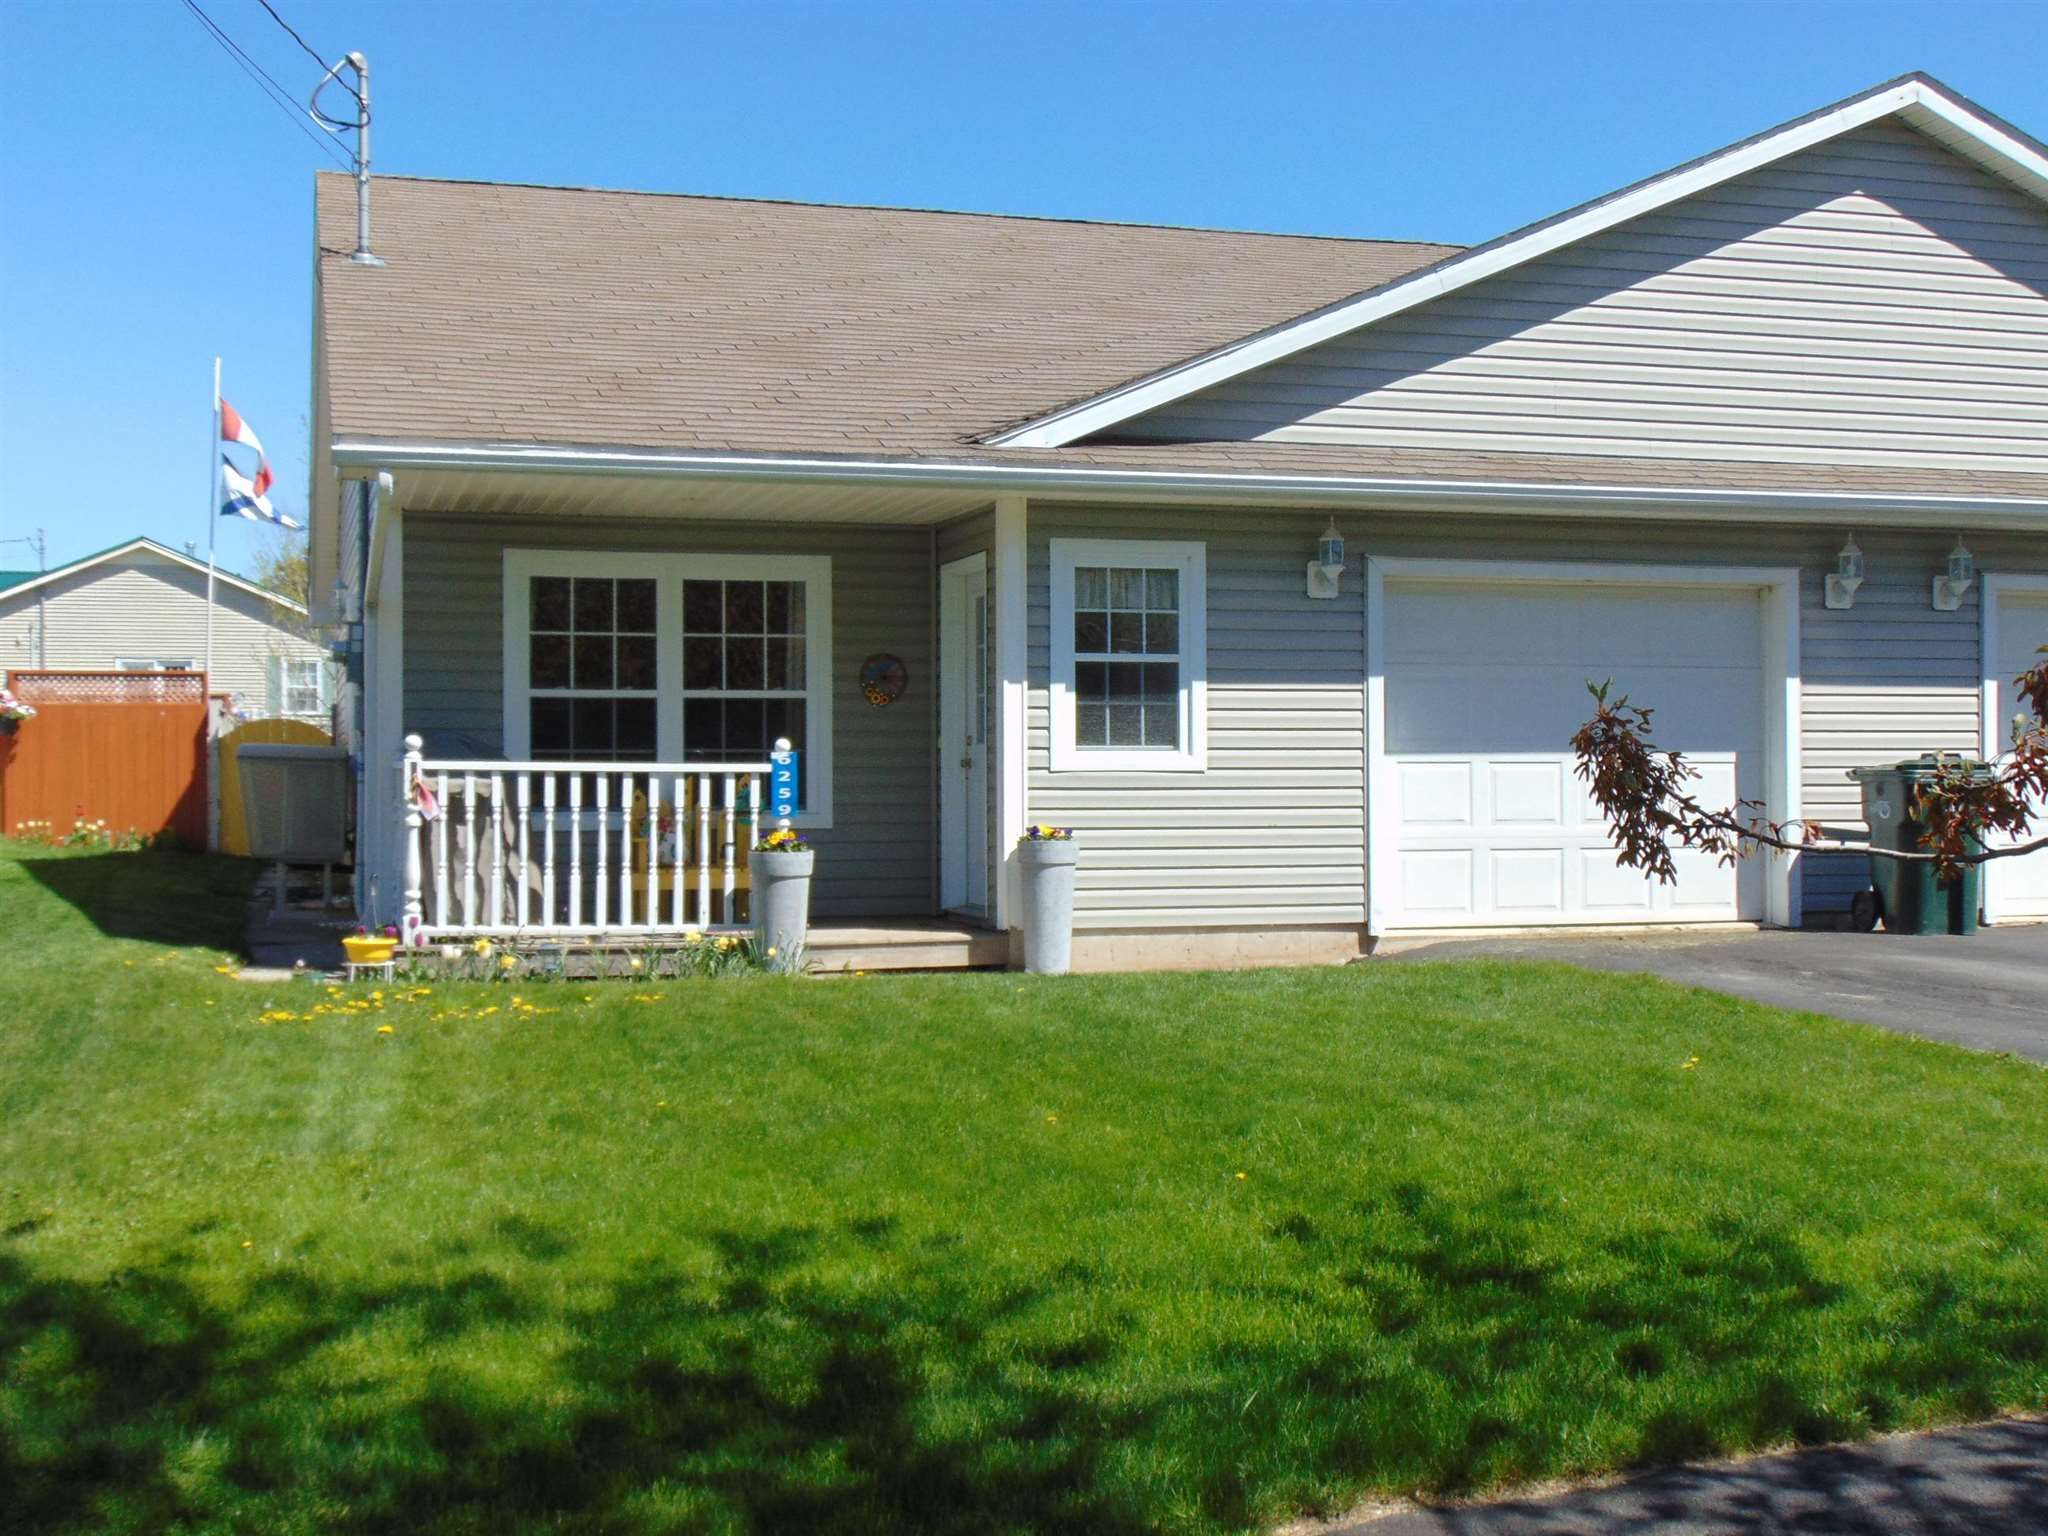 Main Photo: 6259 Highway 1 in Cambridge: 404-Kings County Residential for sale (Annapolis Valley)  : MLS®# 202110484